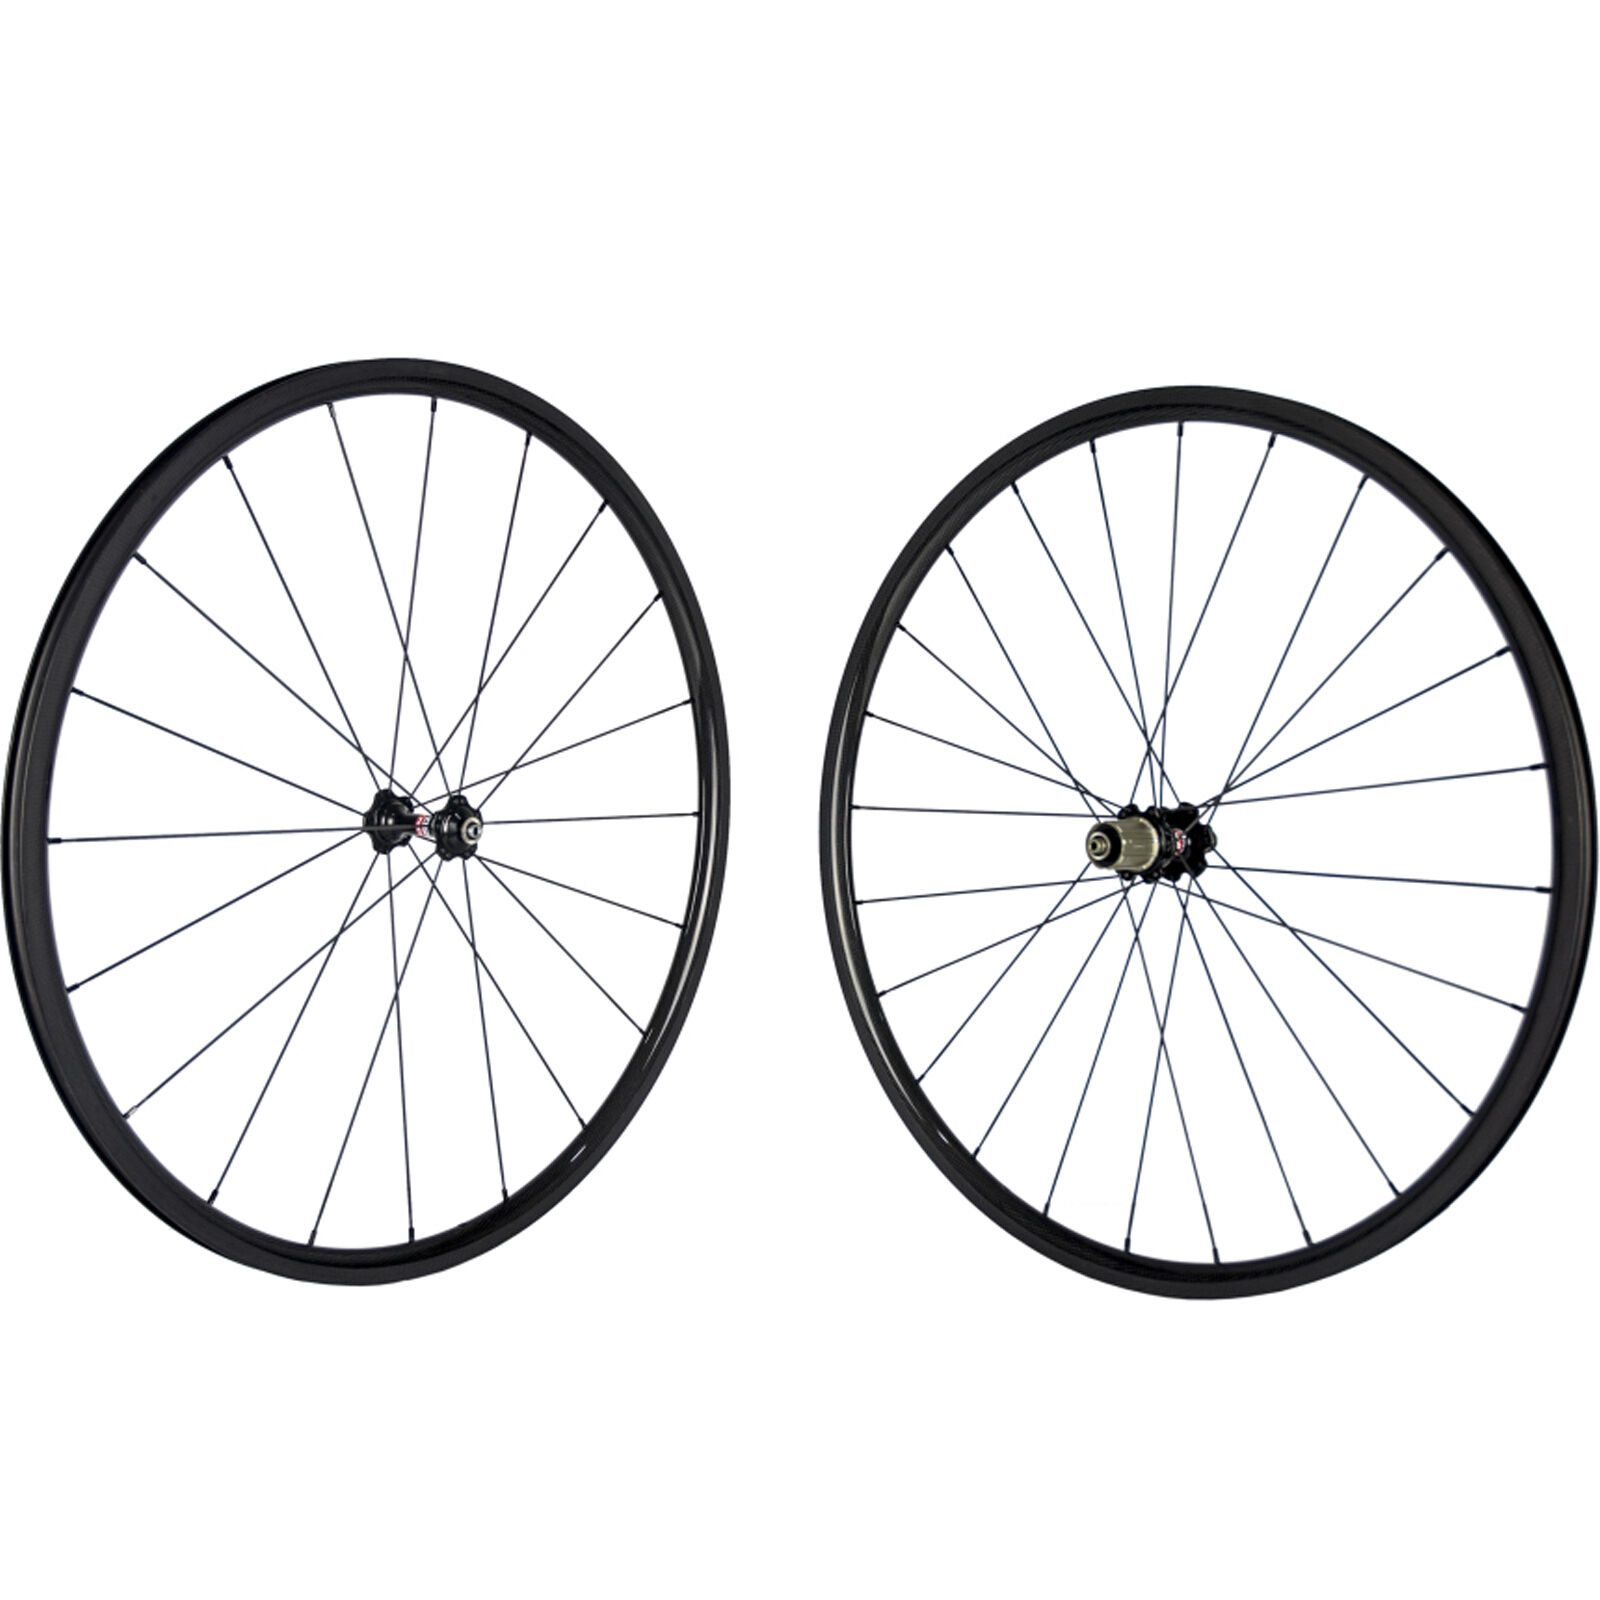 24mm Carbon Clincher  Road Wheelset 23mm Wide Carbon Bike Wheels 271 Hub Bicycle  high quality